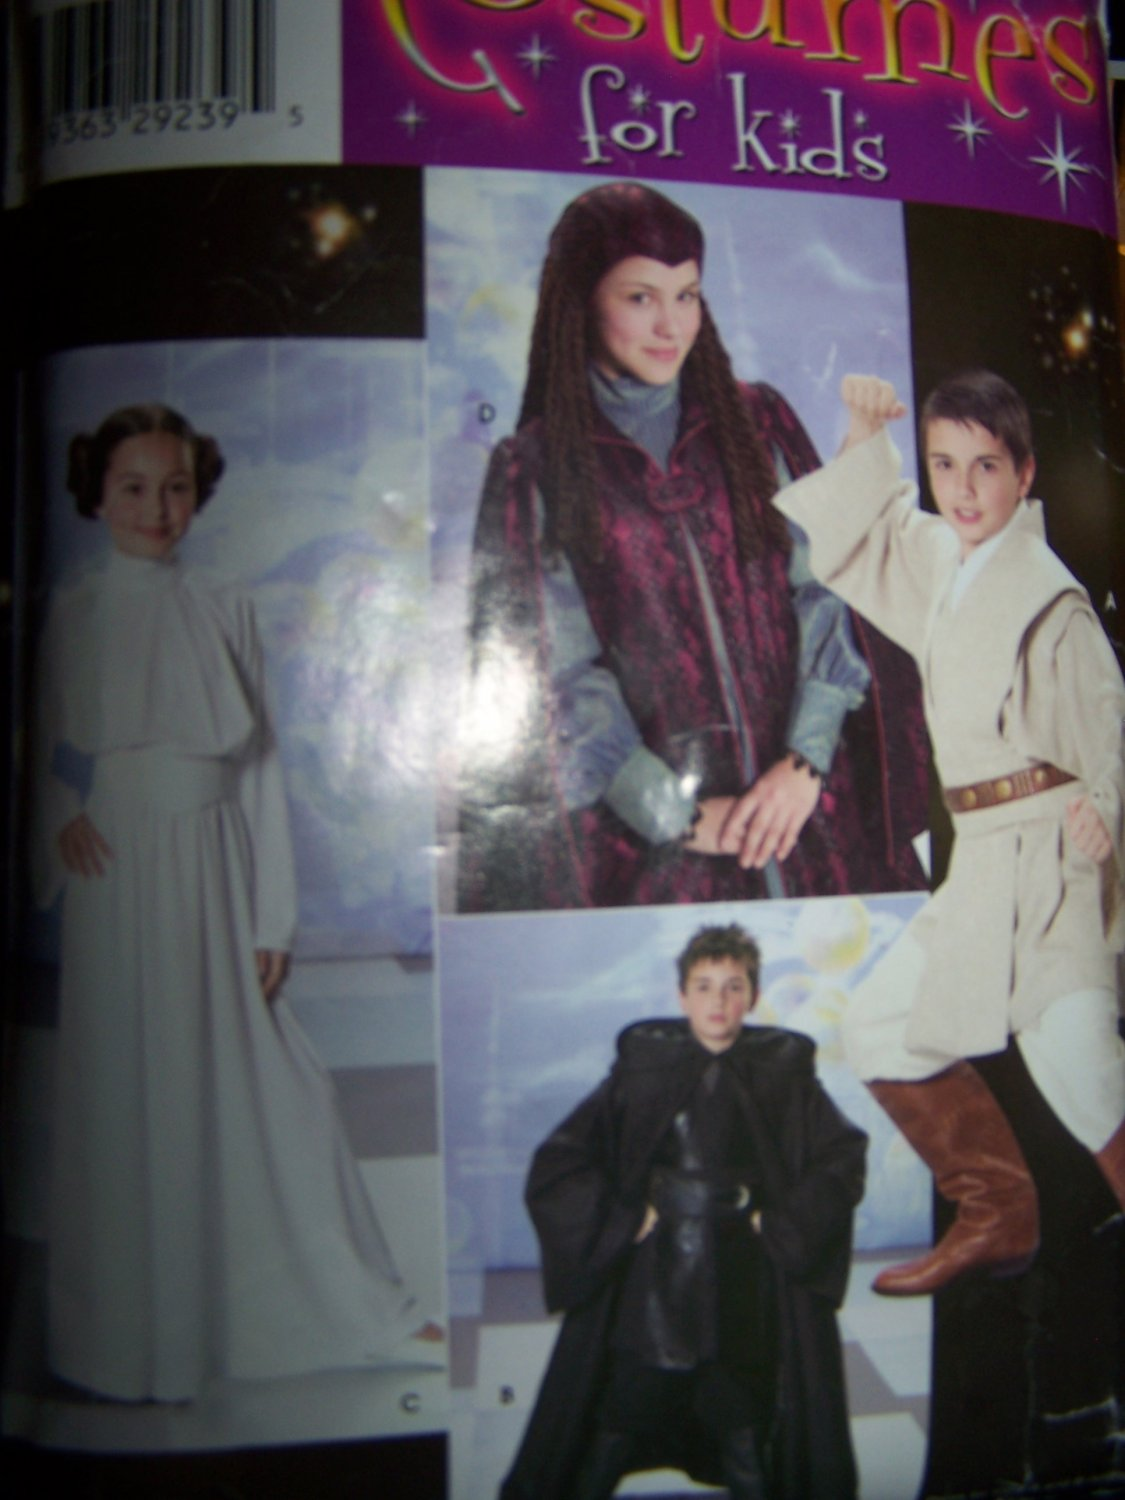 Star Wars Costume Pattern  Simplicity 4426 Princess Leia, Luke, Darth Vadar by Andrea Schewe